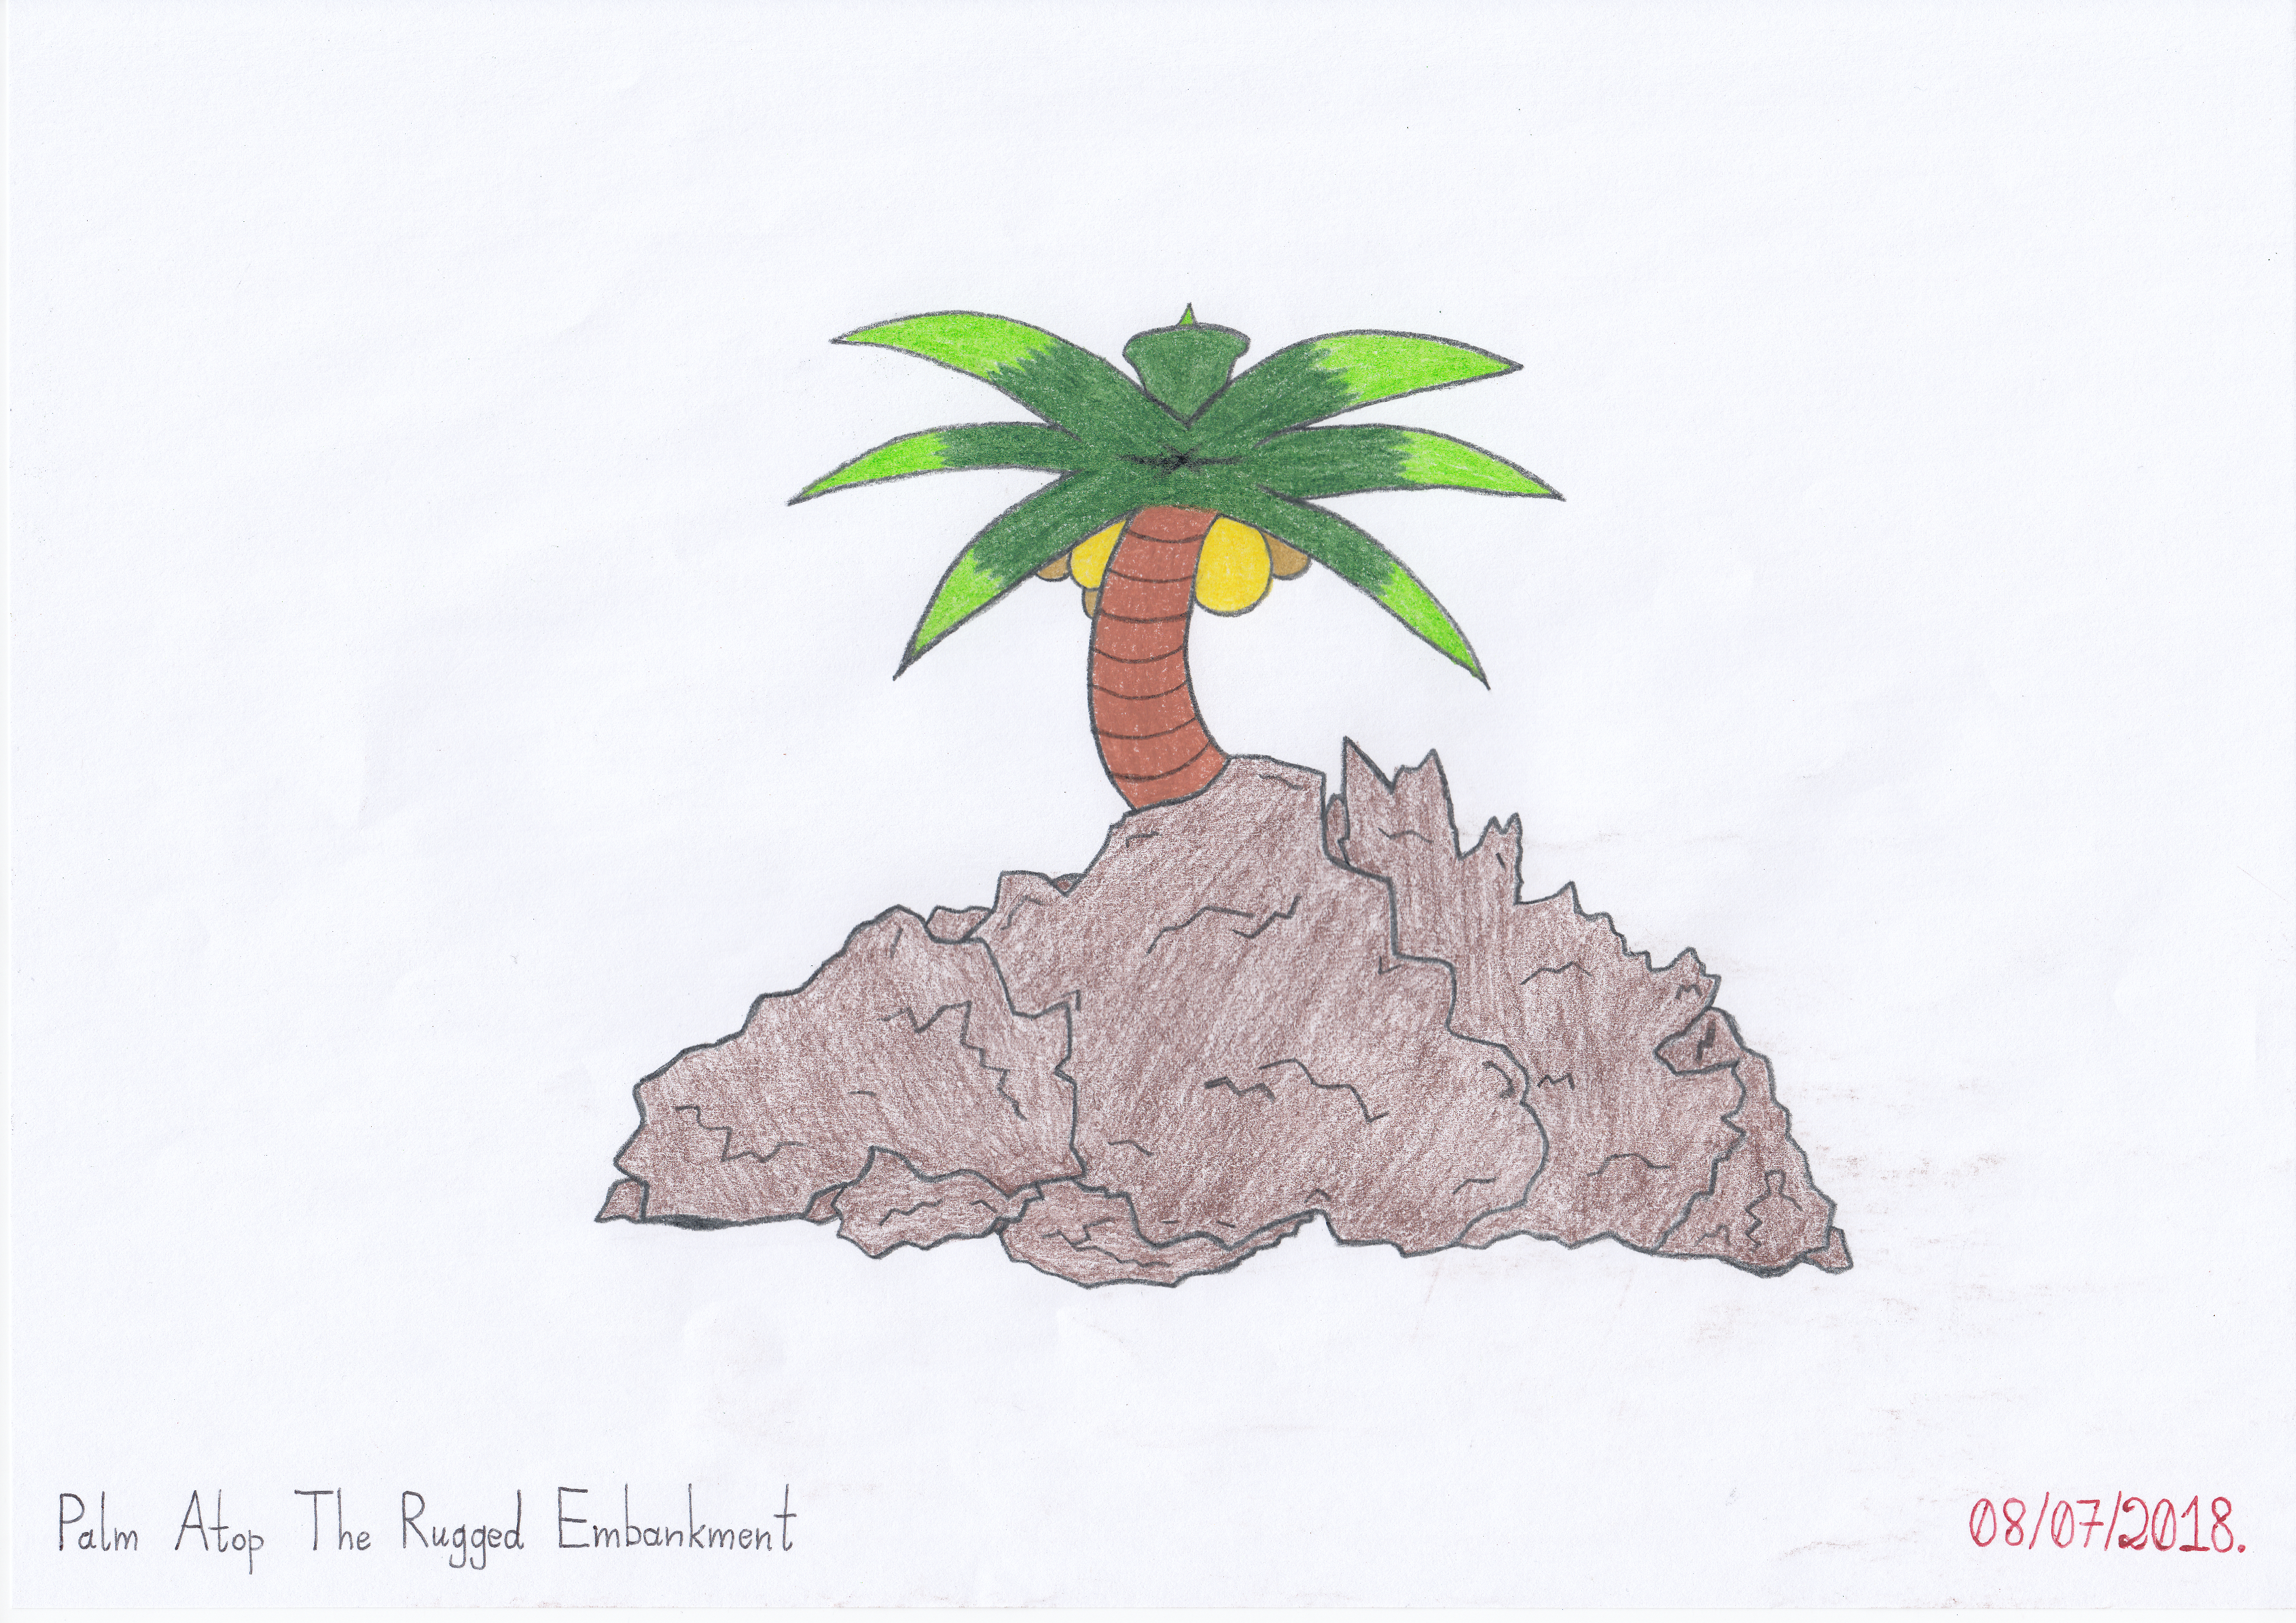 Palm Atop The Rugged Embankment